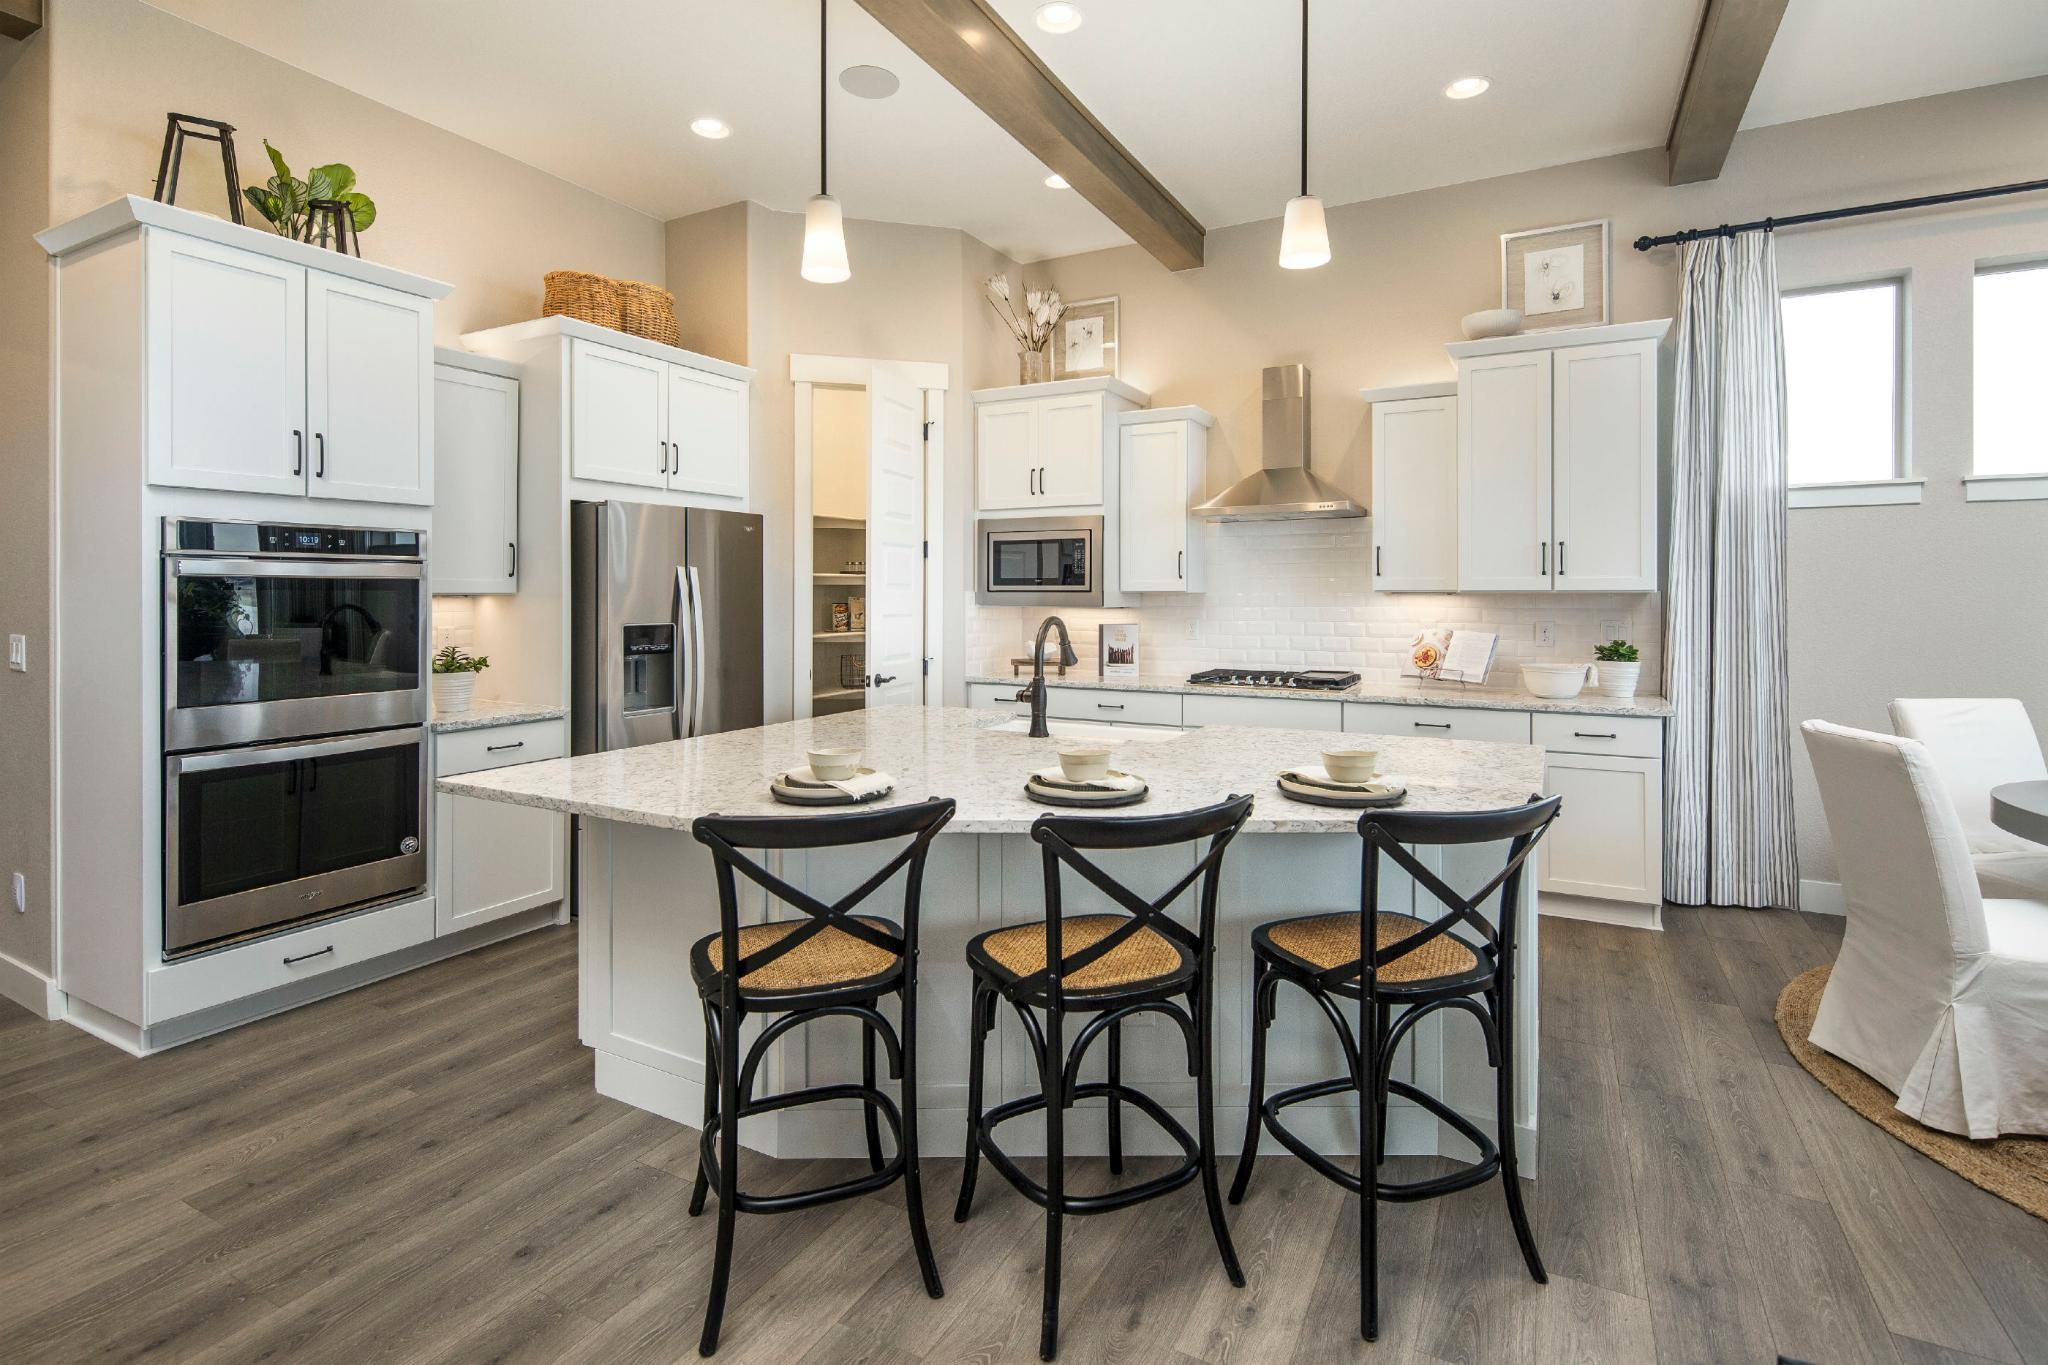 Kitchen featured in the Plan C408 By American Legend Homes in Fort Collins-Loveland, CO